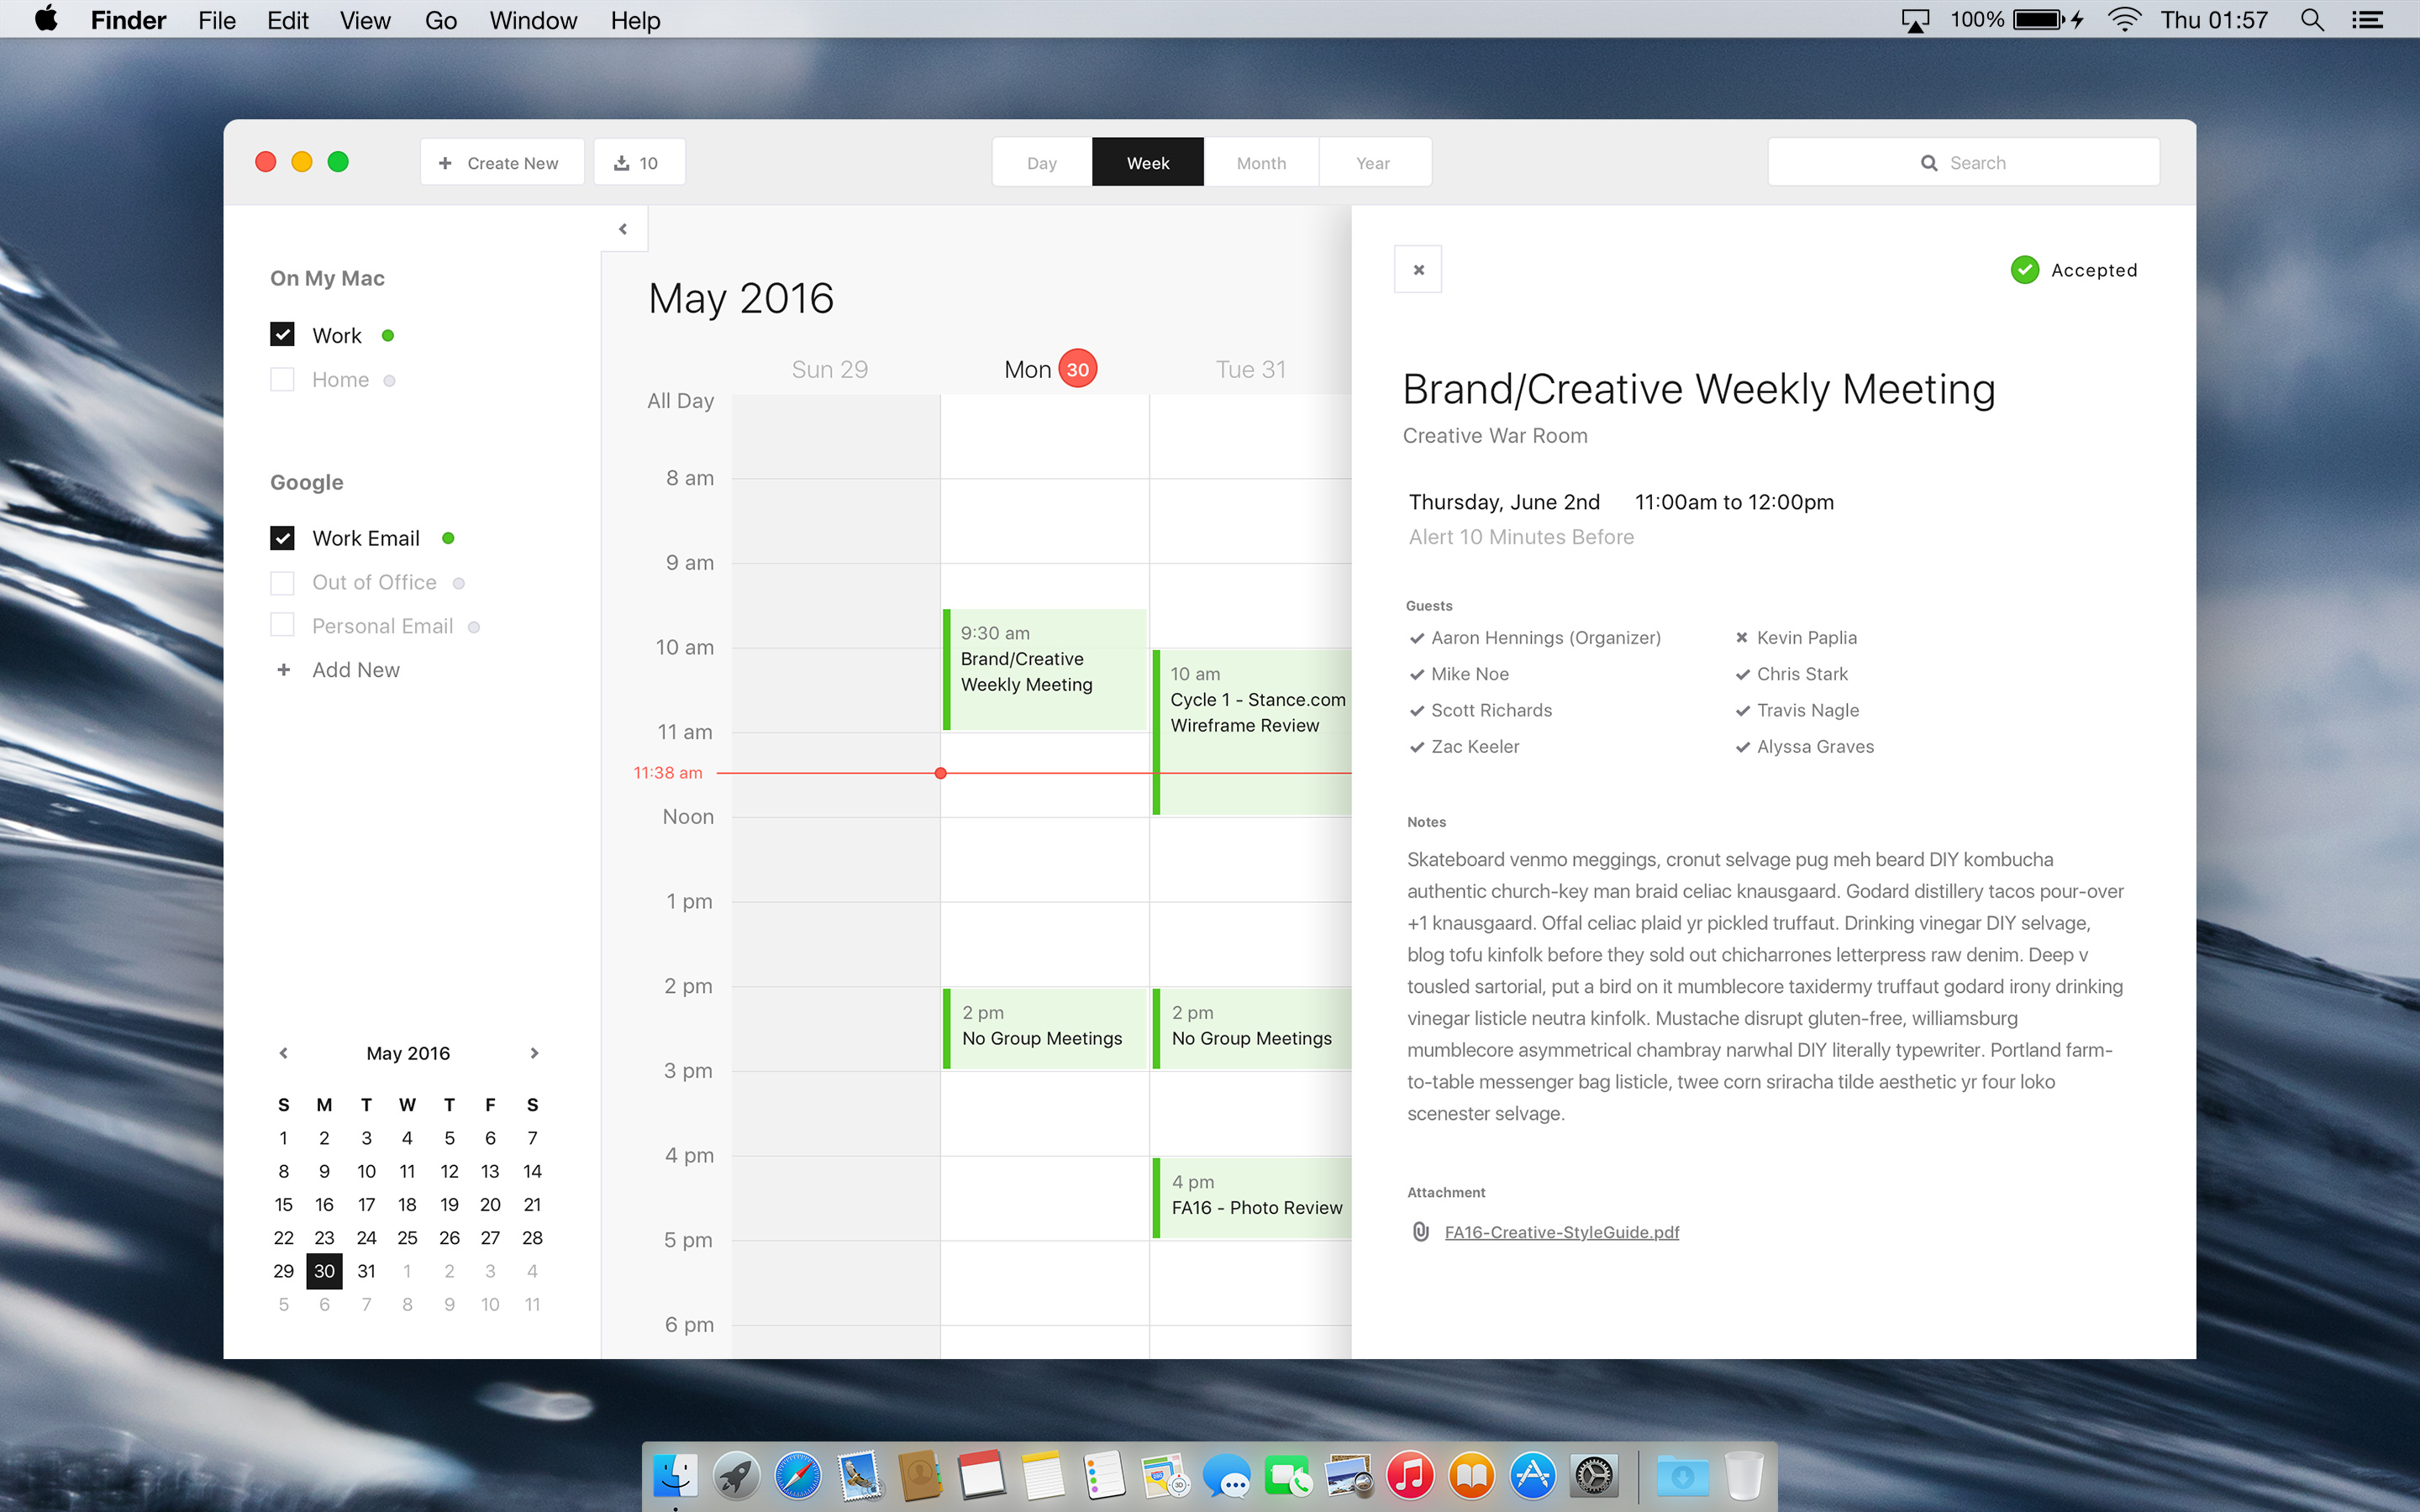 Calendar Design Mac : Mac calendar desktop app design exercise iosup